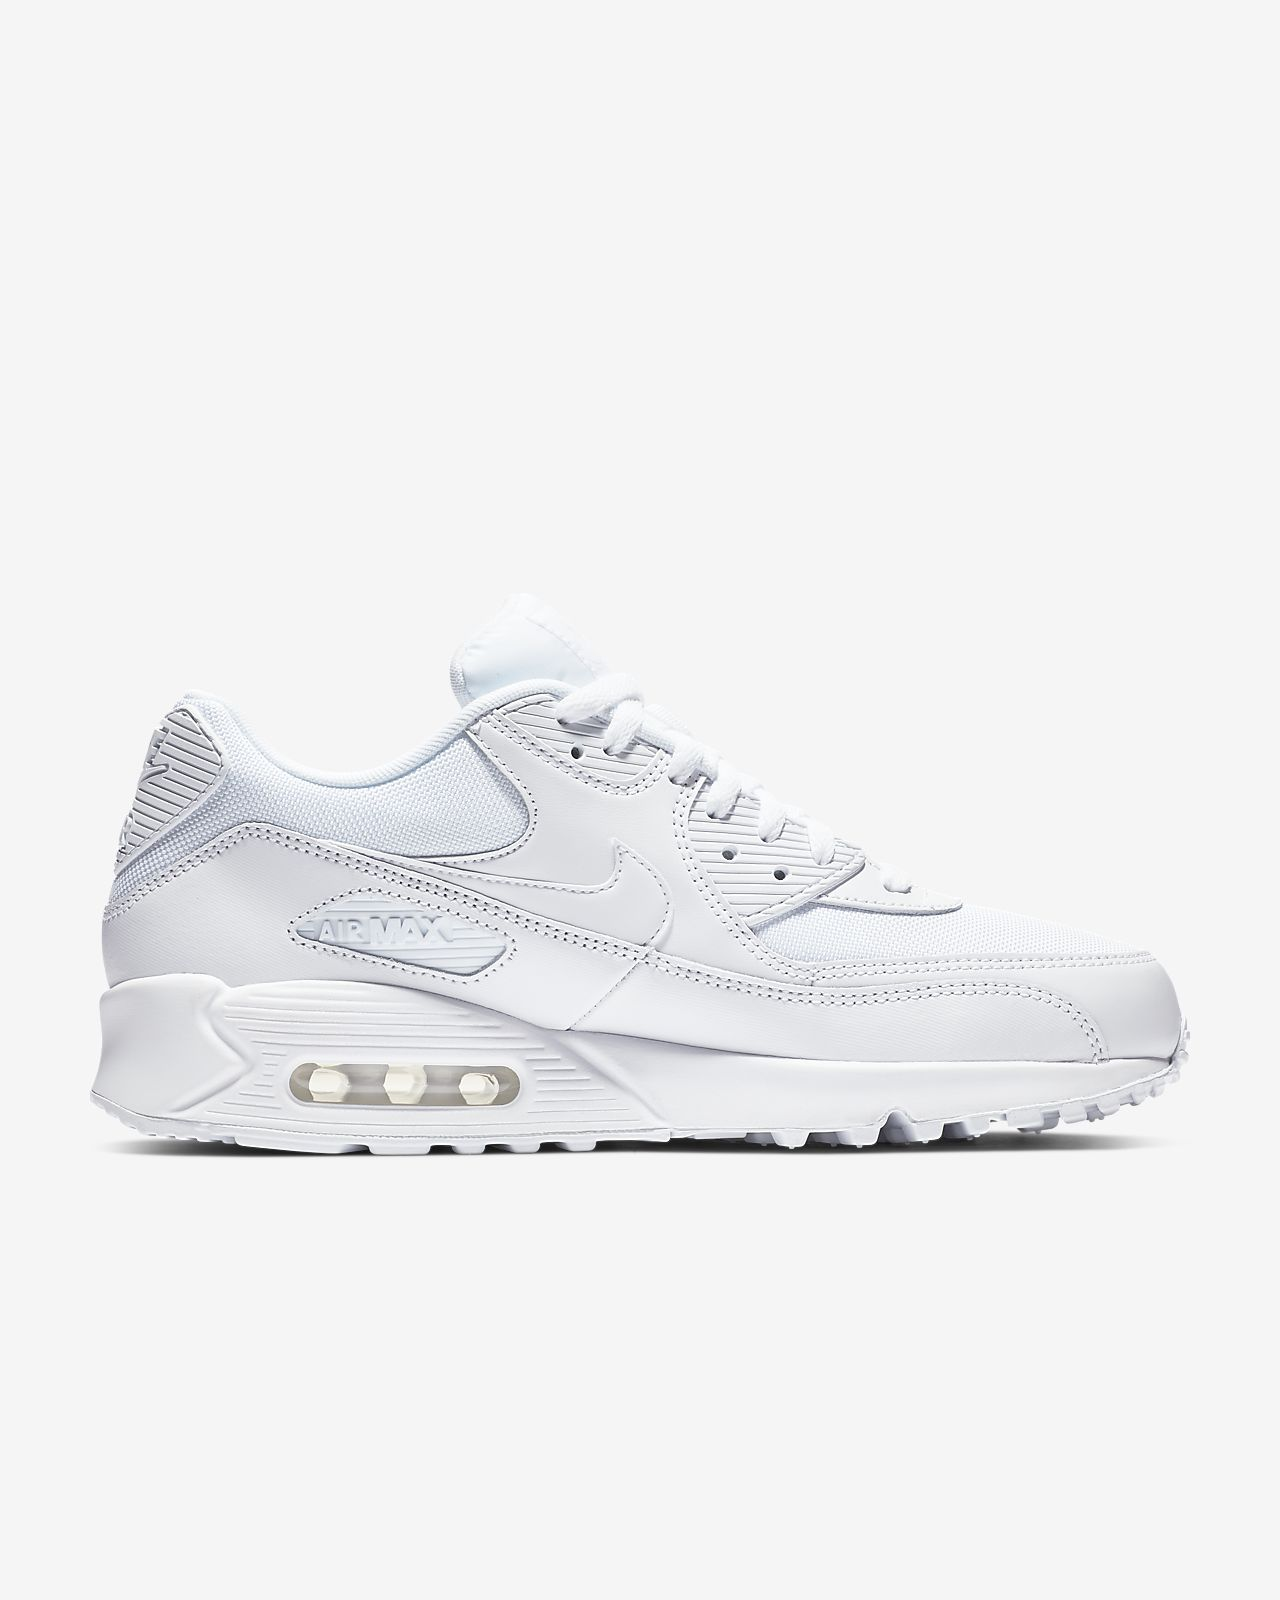 separation shoes daa84 53268 ... Nike Air Max 90 Essential Men s Shoe